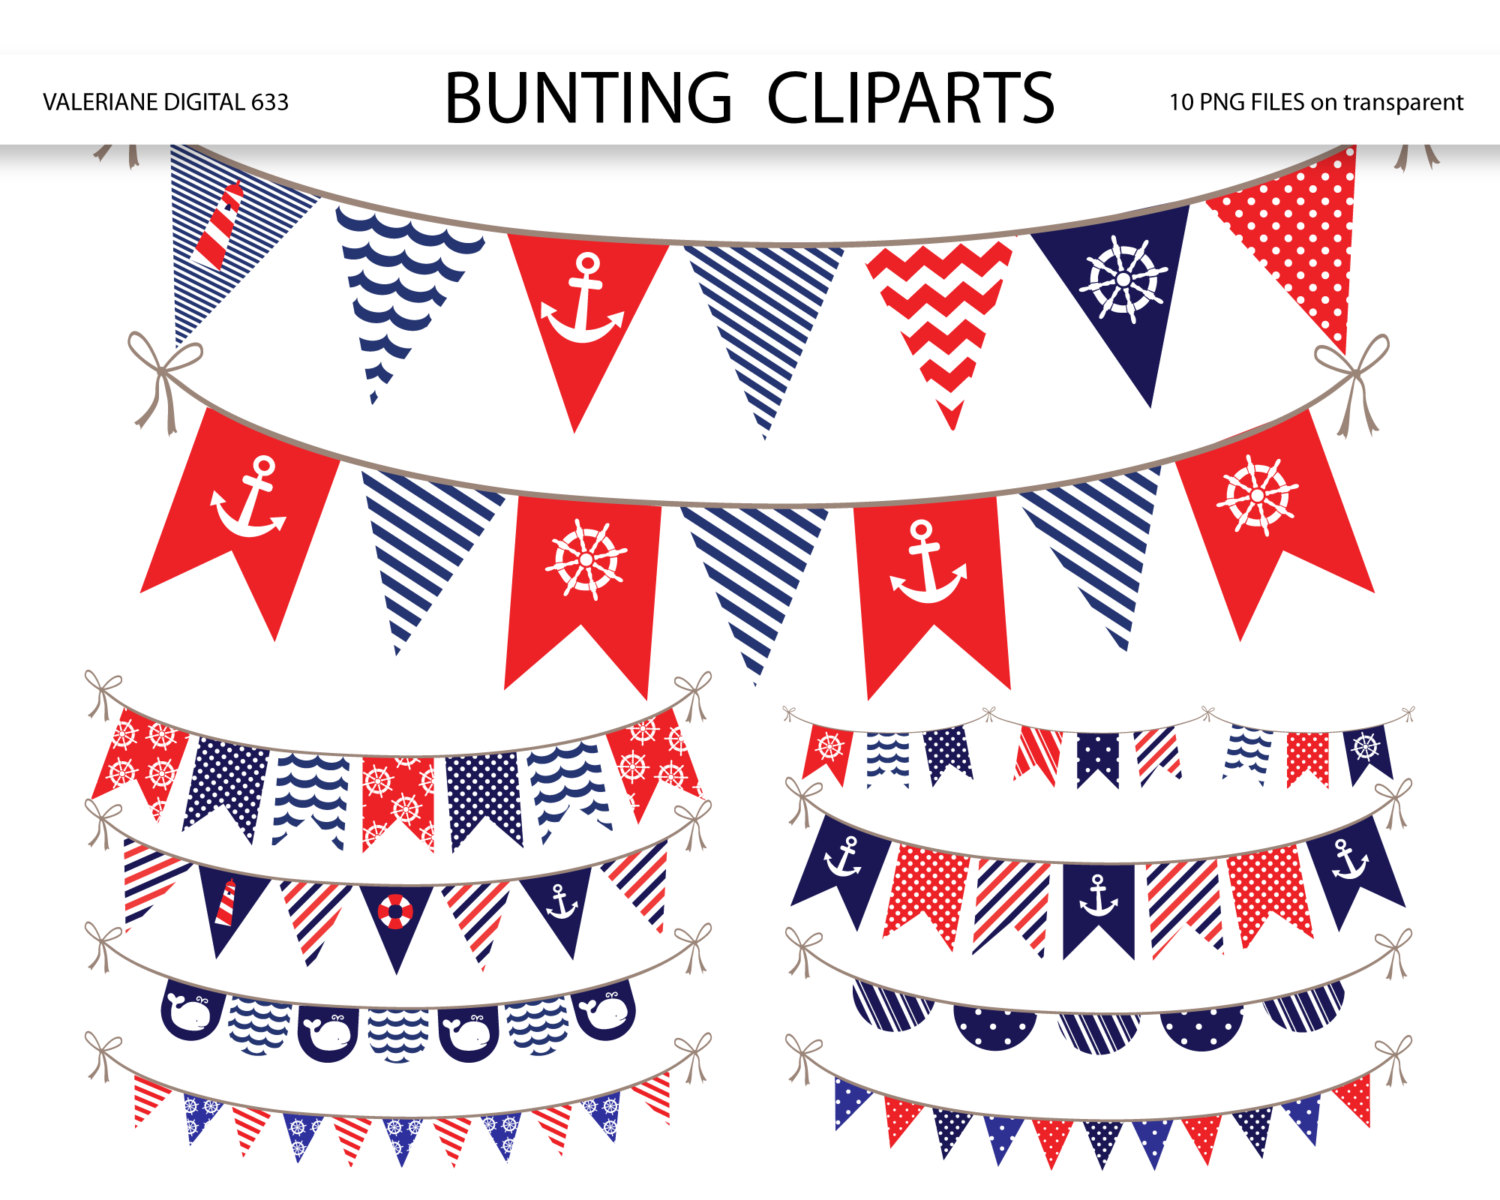 Nautical Bunting banner clipart, nautical clipart, bunting banners clip art pack for invitations, scrapbooking - INSTANT DOWNLOAD Pack 633